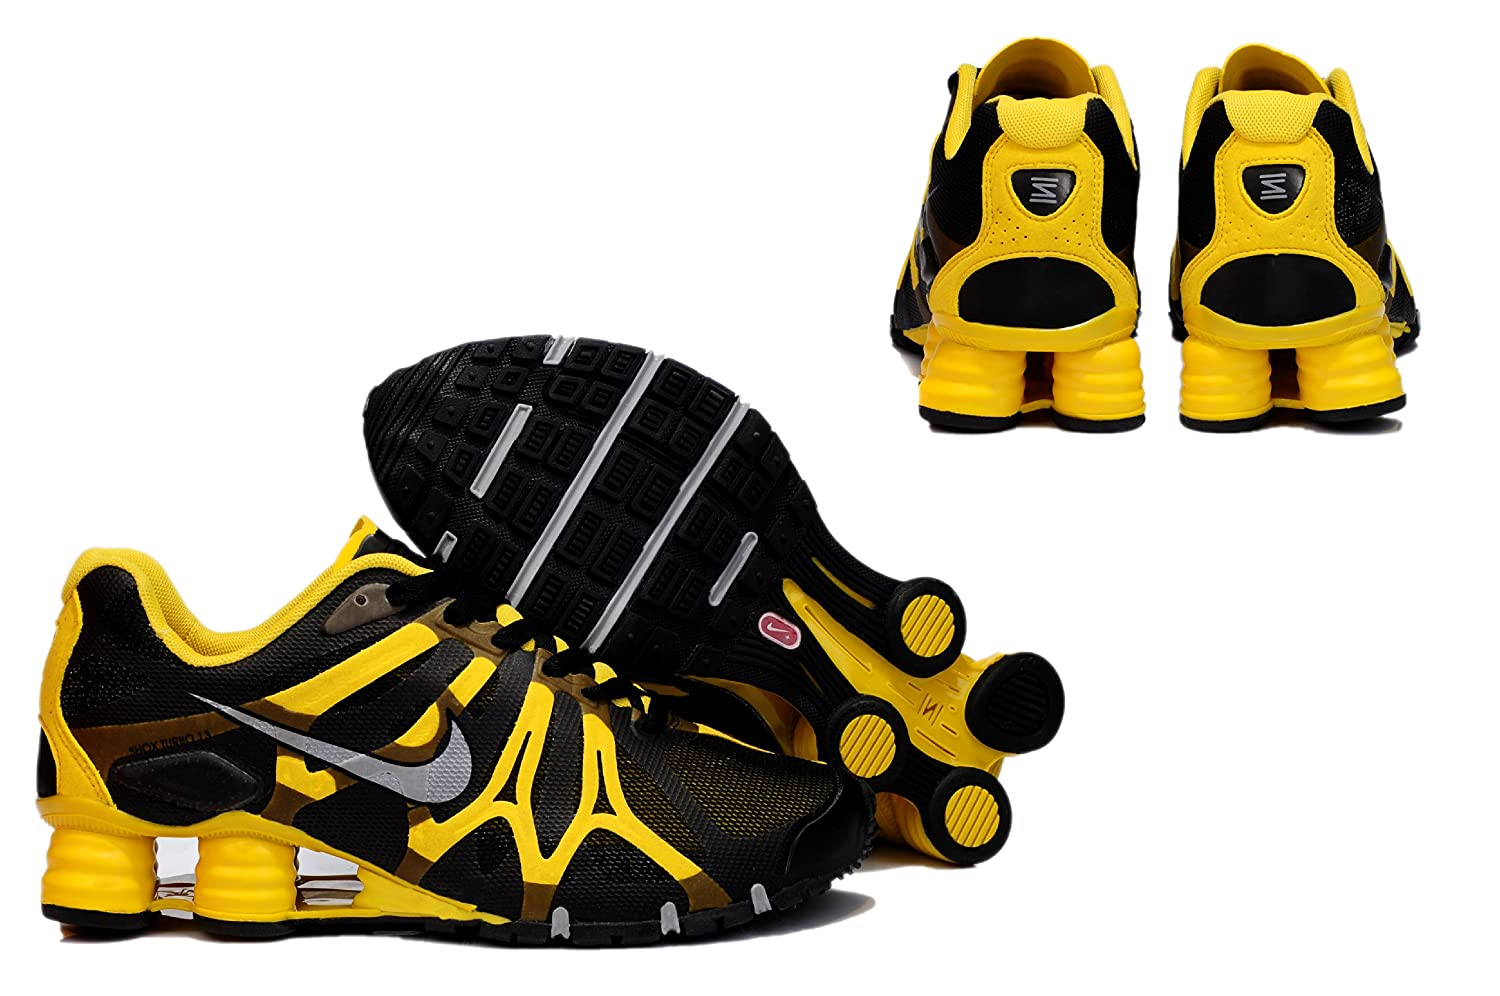 differently 9d2a2 c68ba Nike shox turbo 13 Black/Yellow UK 10.5: Amazon.co.uk: Shoes ...